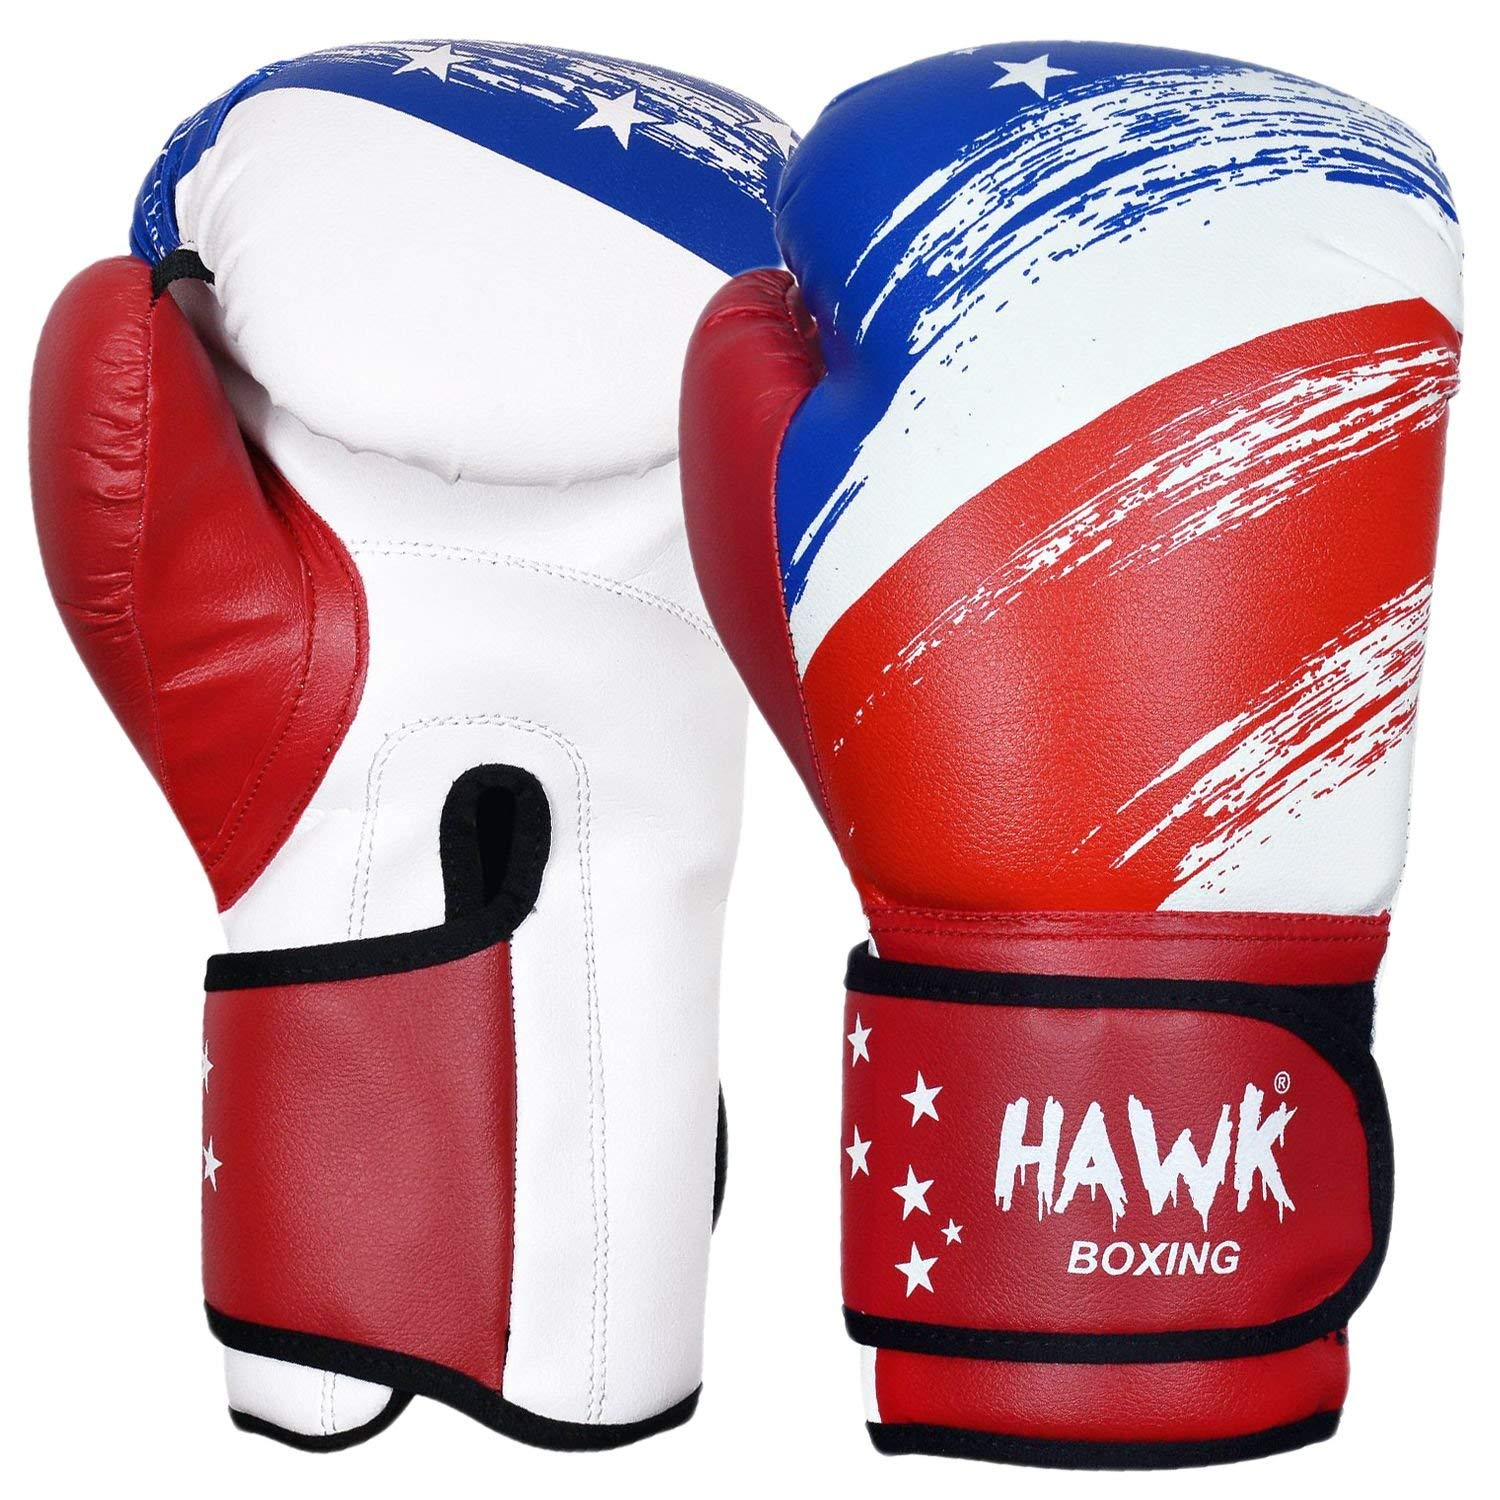 1 Year Warranty!!!! Hawk Boxing Gloves for Men /& Women Training Pro Punching Heavy Bag Mitts UFC MMA Muay Thai Sparring Kickboxing Gloves